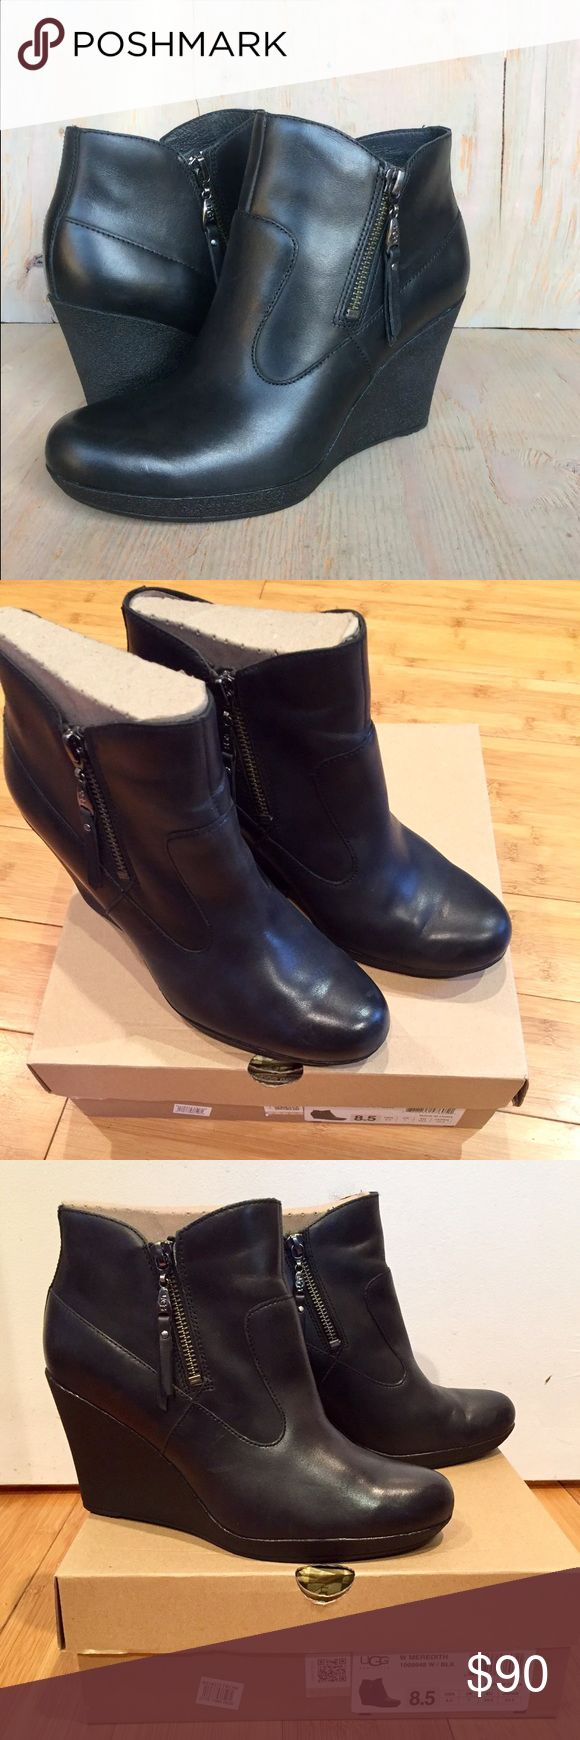 UGG Australia Meredith Black Leather Zip Booties Size 8.5 • zipper closure on each side of each bootie • textured heeled wedge with non-slip surface • sheepskin inner footbed • worn maybe a few times • practically new • too narrow for my wide feet • reasonable offers welcome • comes with authenticity card & dust bag • bought from Nordstrom last year (stock photo is first pic) UGG Shoes Ankle Boots & Booties